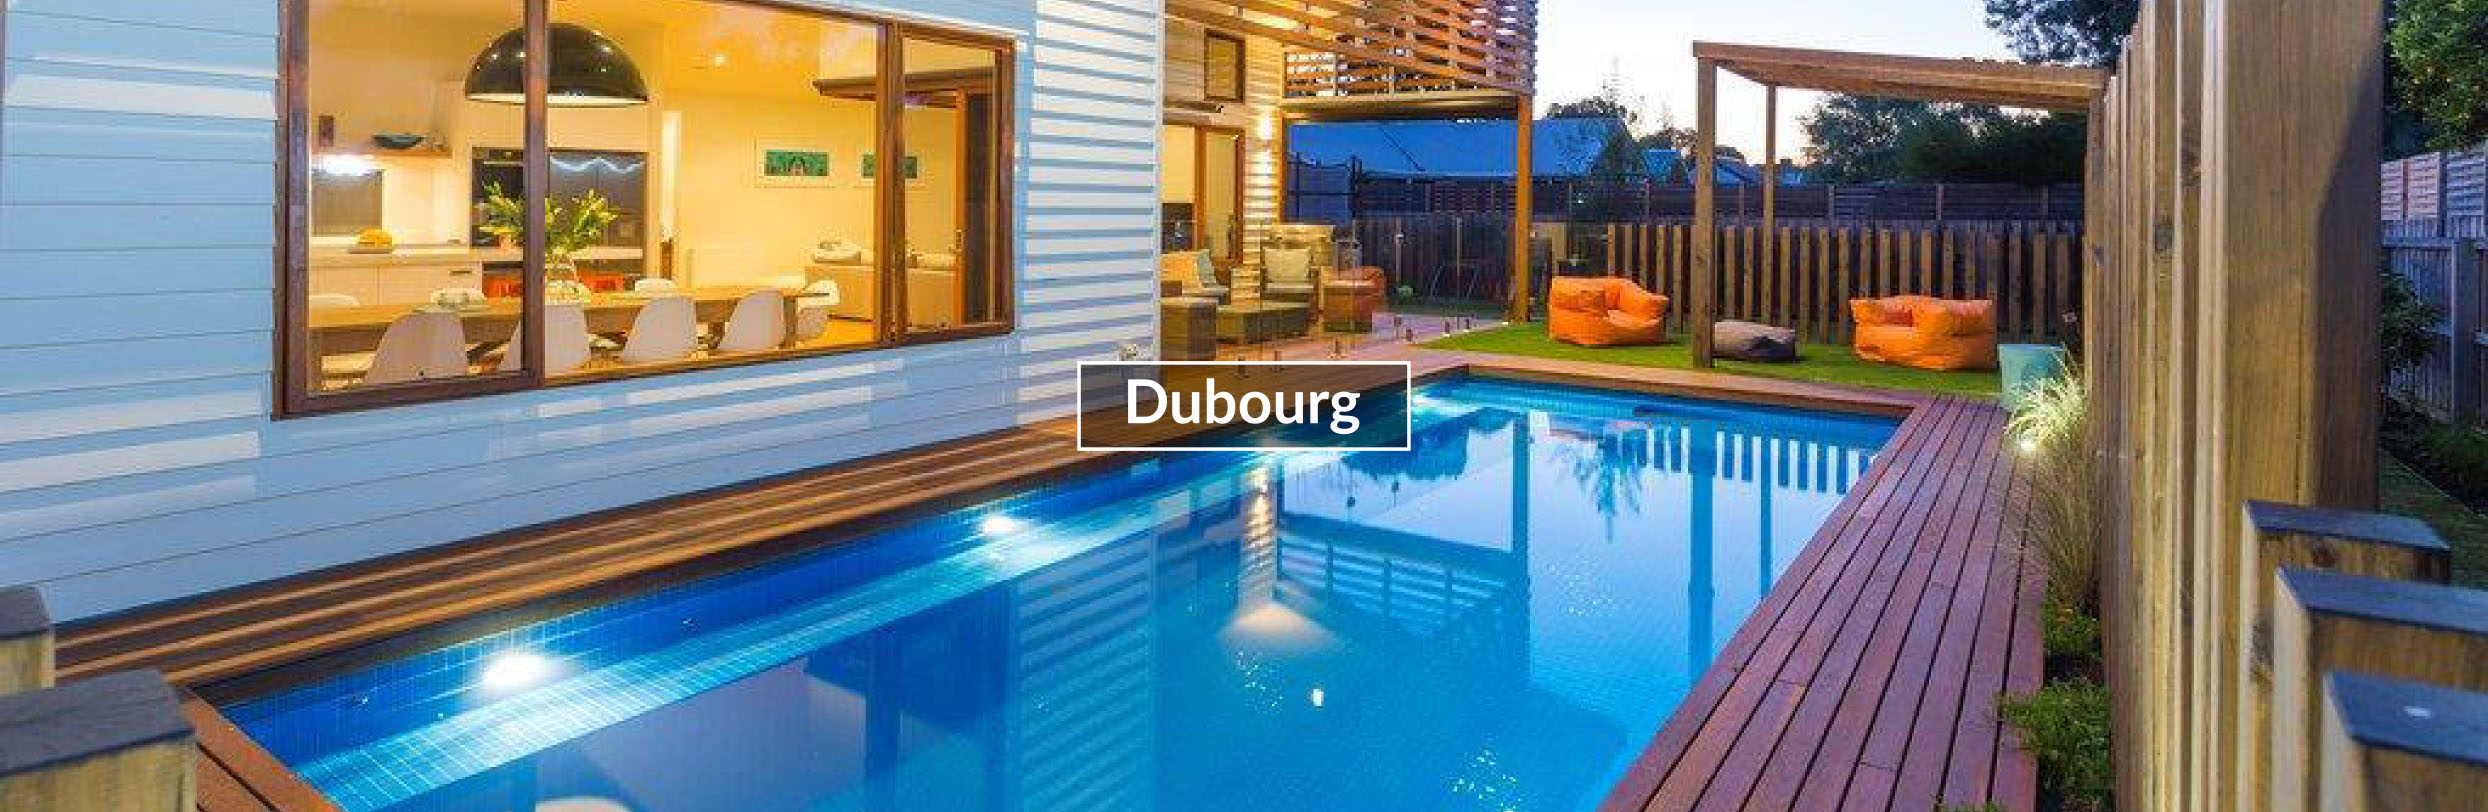 Dubourg - Kiama Pools Pool Landscaping Project